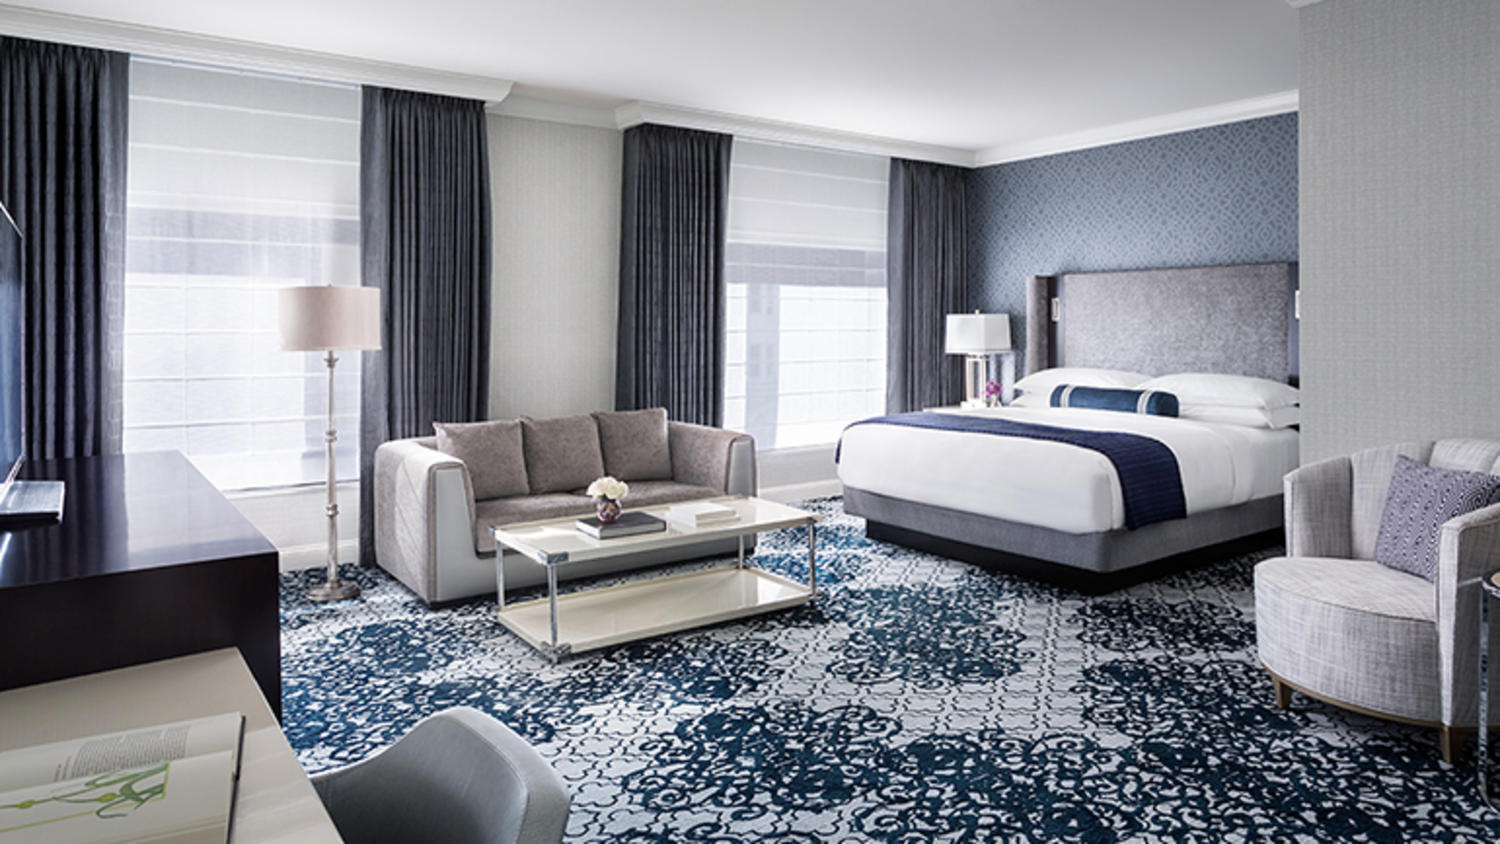 Tarkett to Acquire Lexmark, One of the US Leaders in Carpet for Hospitality